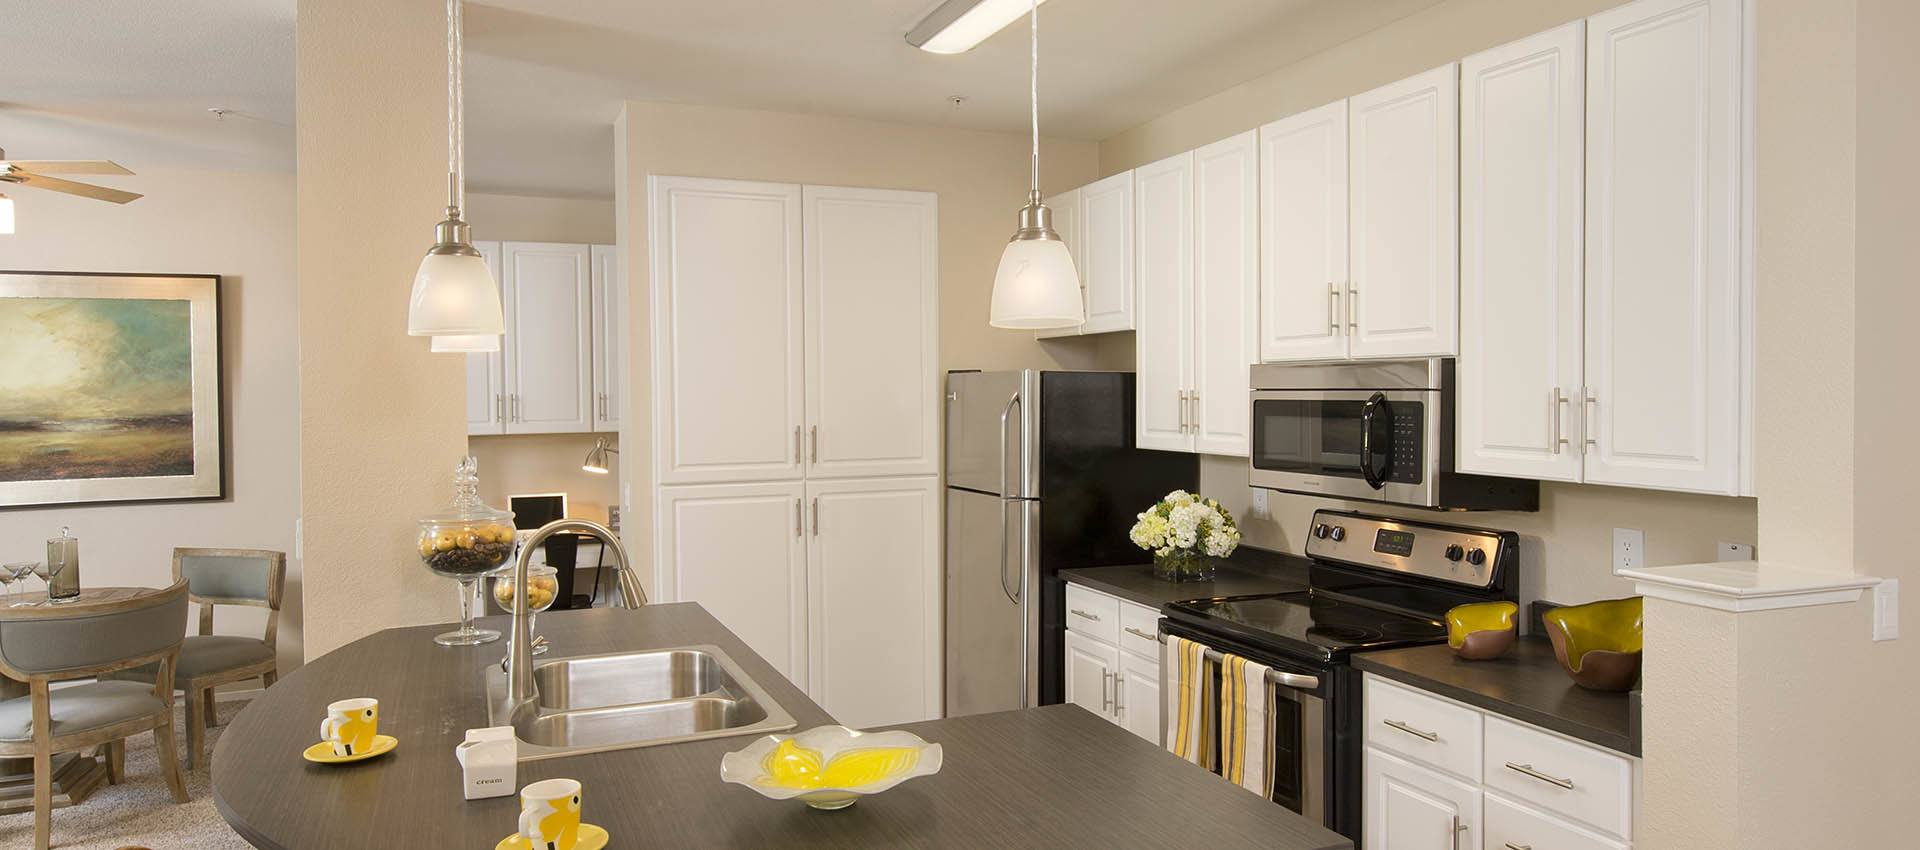 Kitchen With White Cabinets at Rosewalk at San Jose